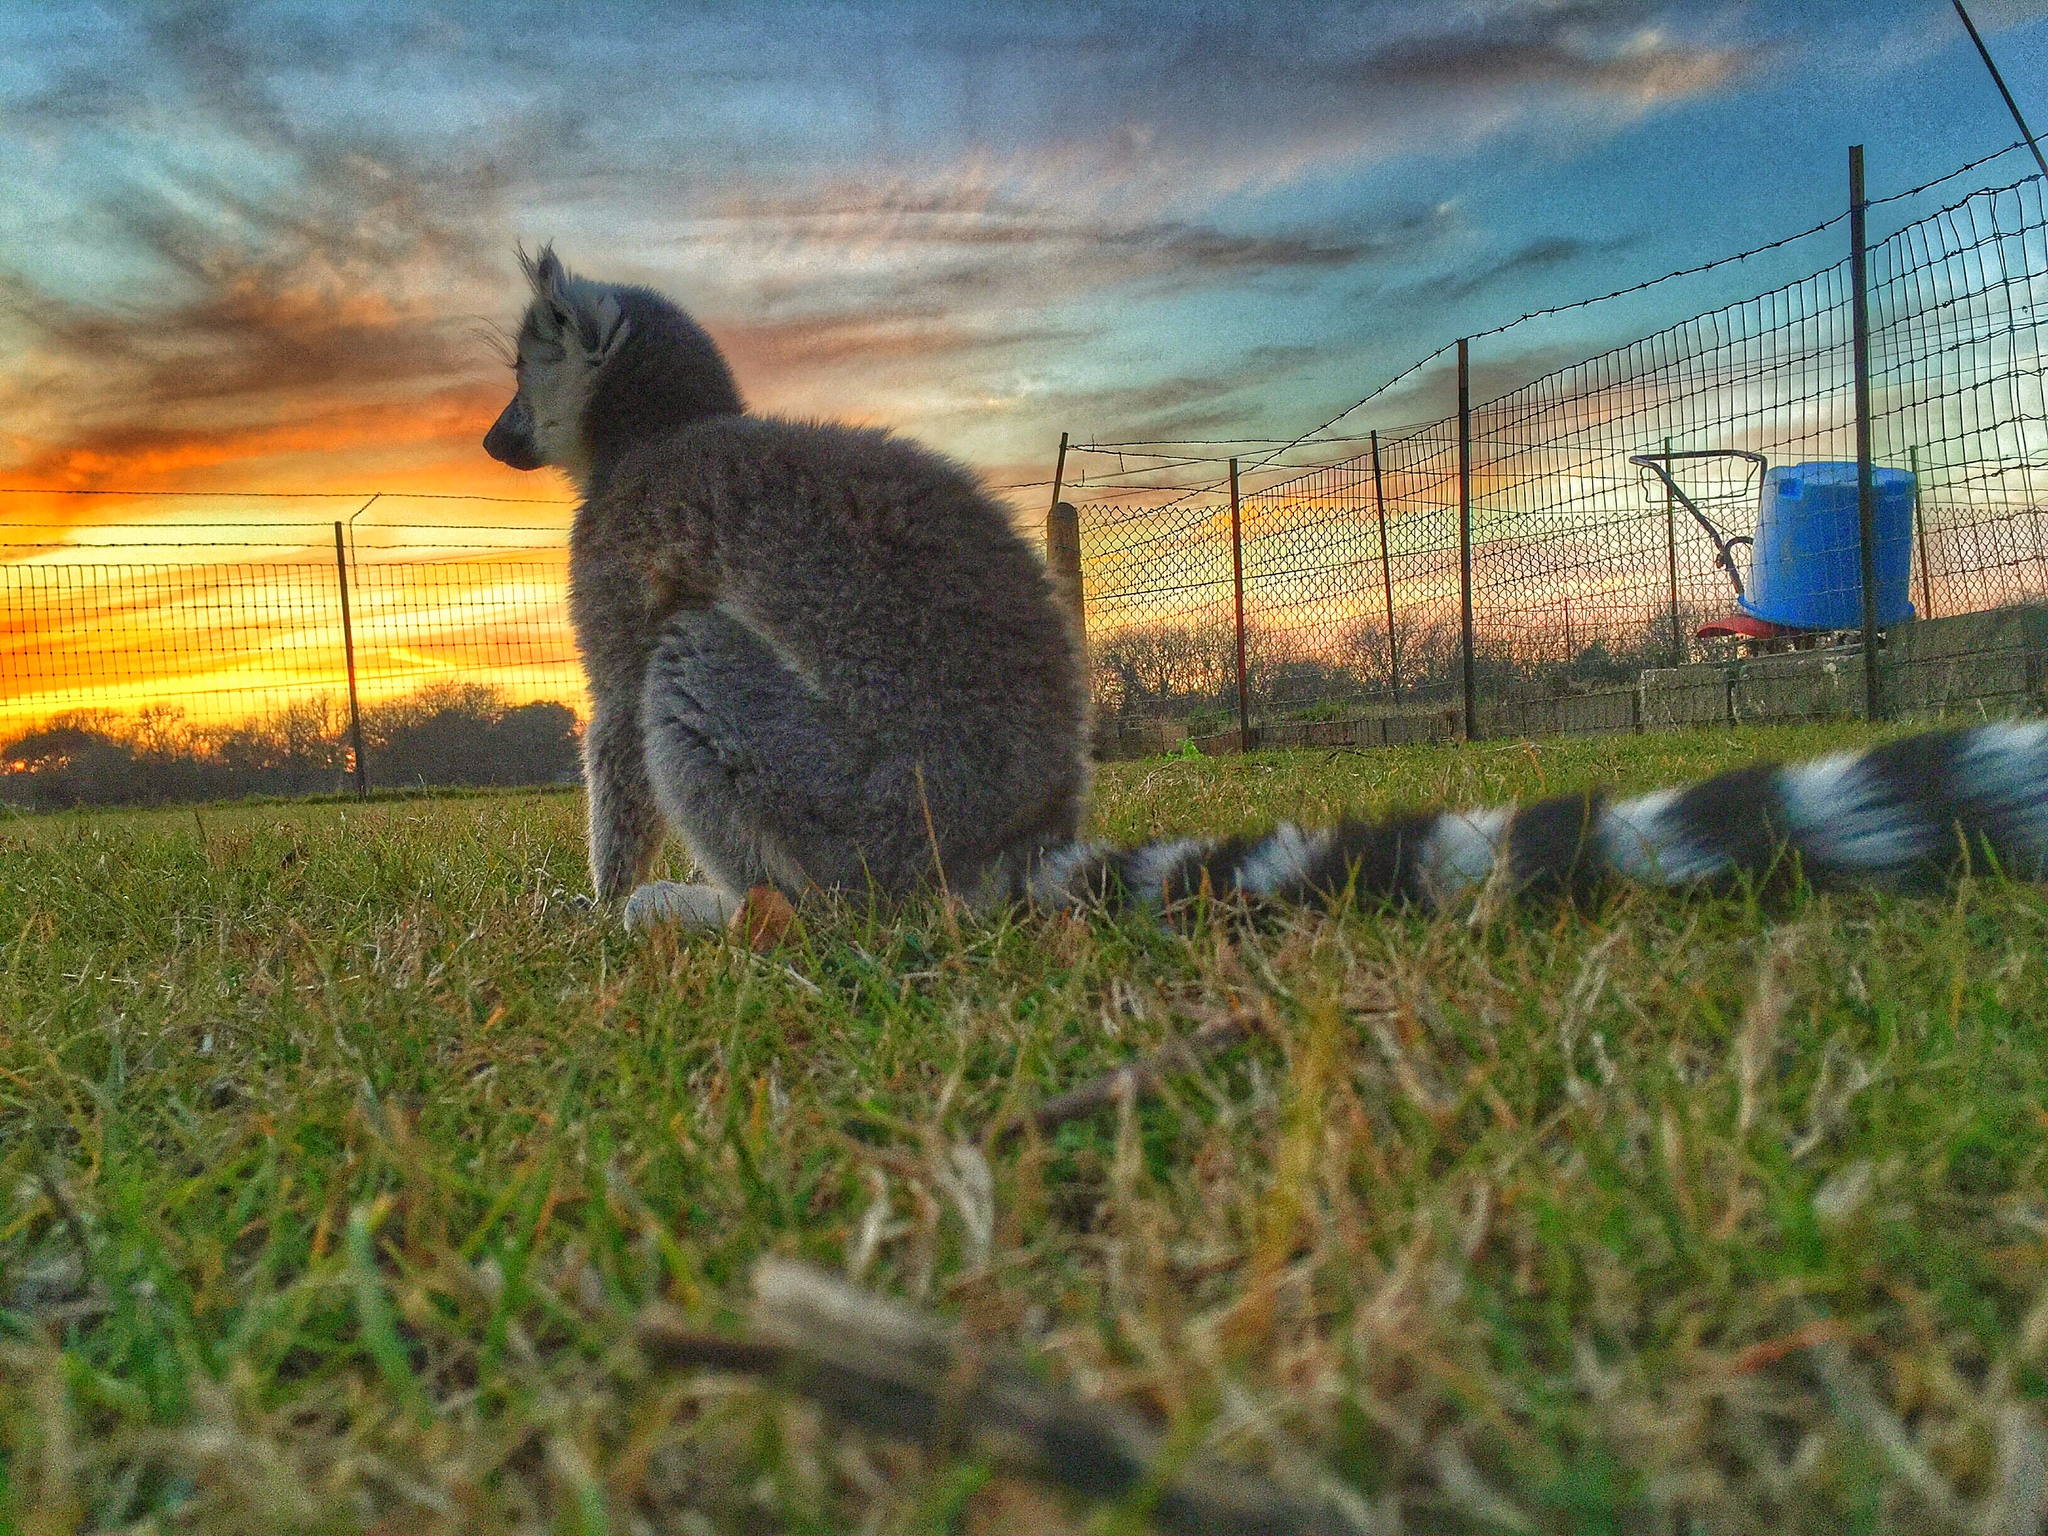 lola the lemur